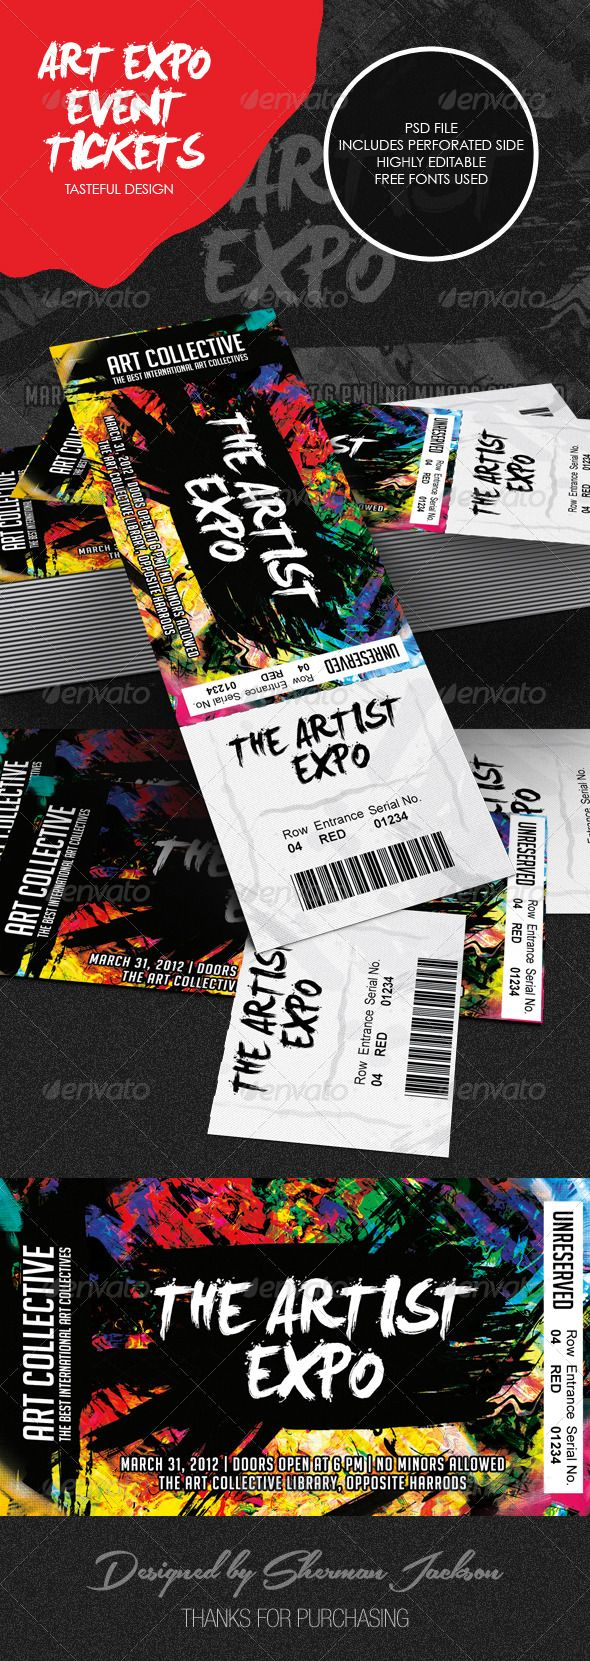 Concert Ticket Template Free Download Interesting 14 Best Layoutstext And Images Images On Pinterest  Brochures .